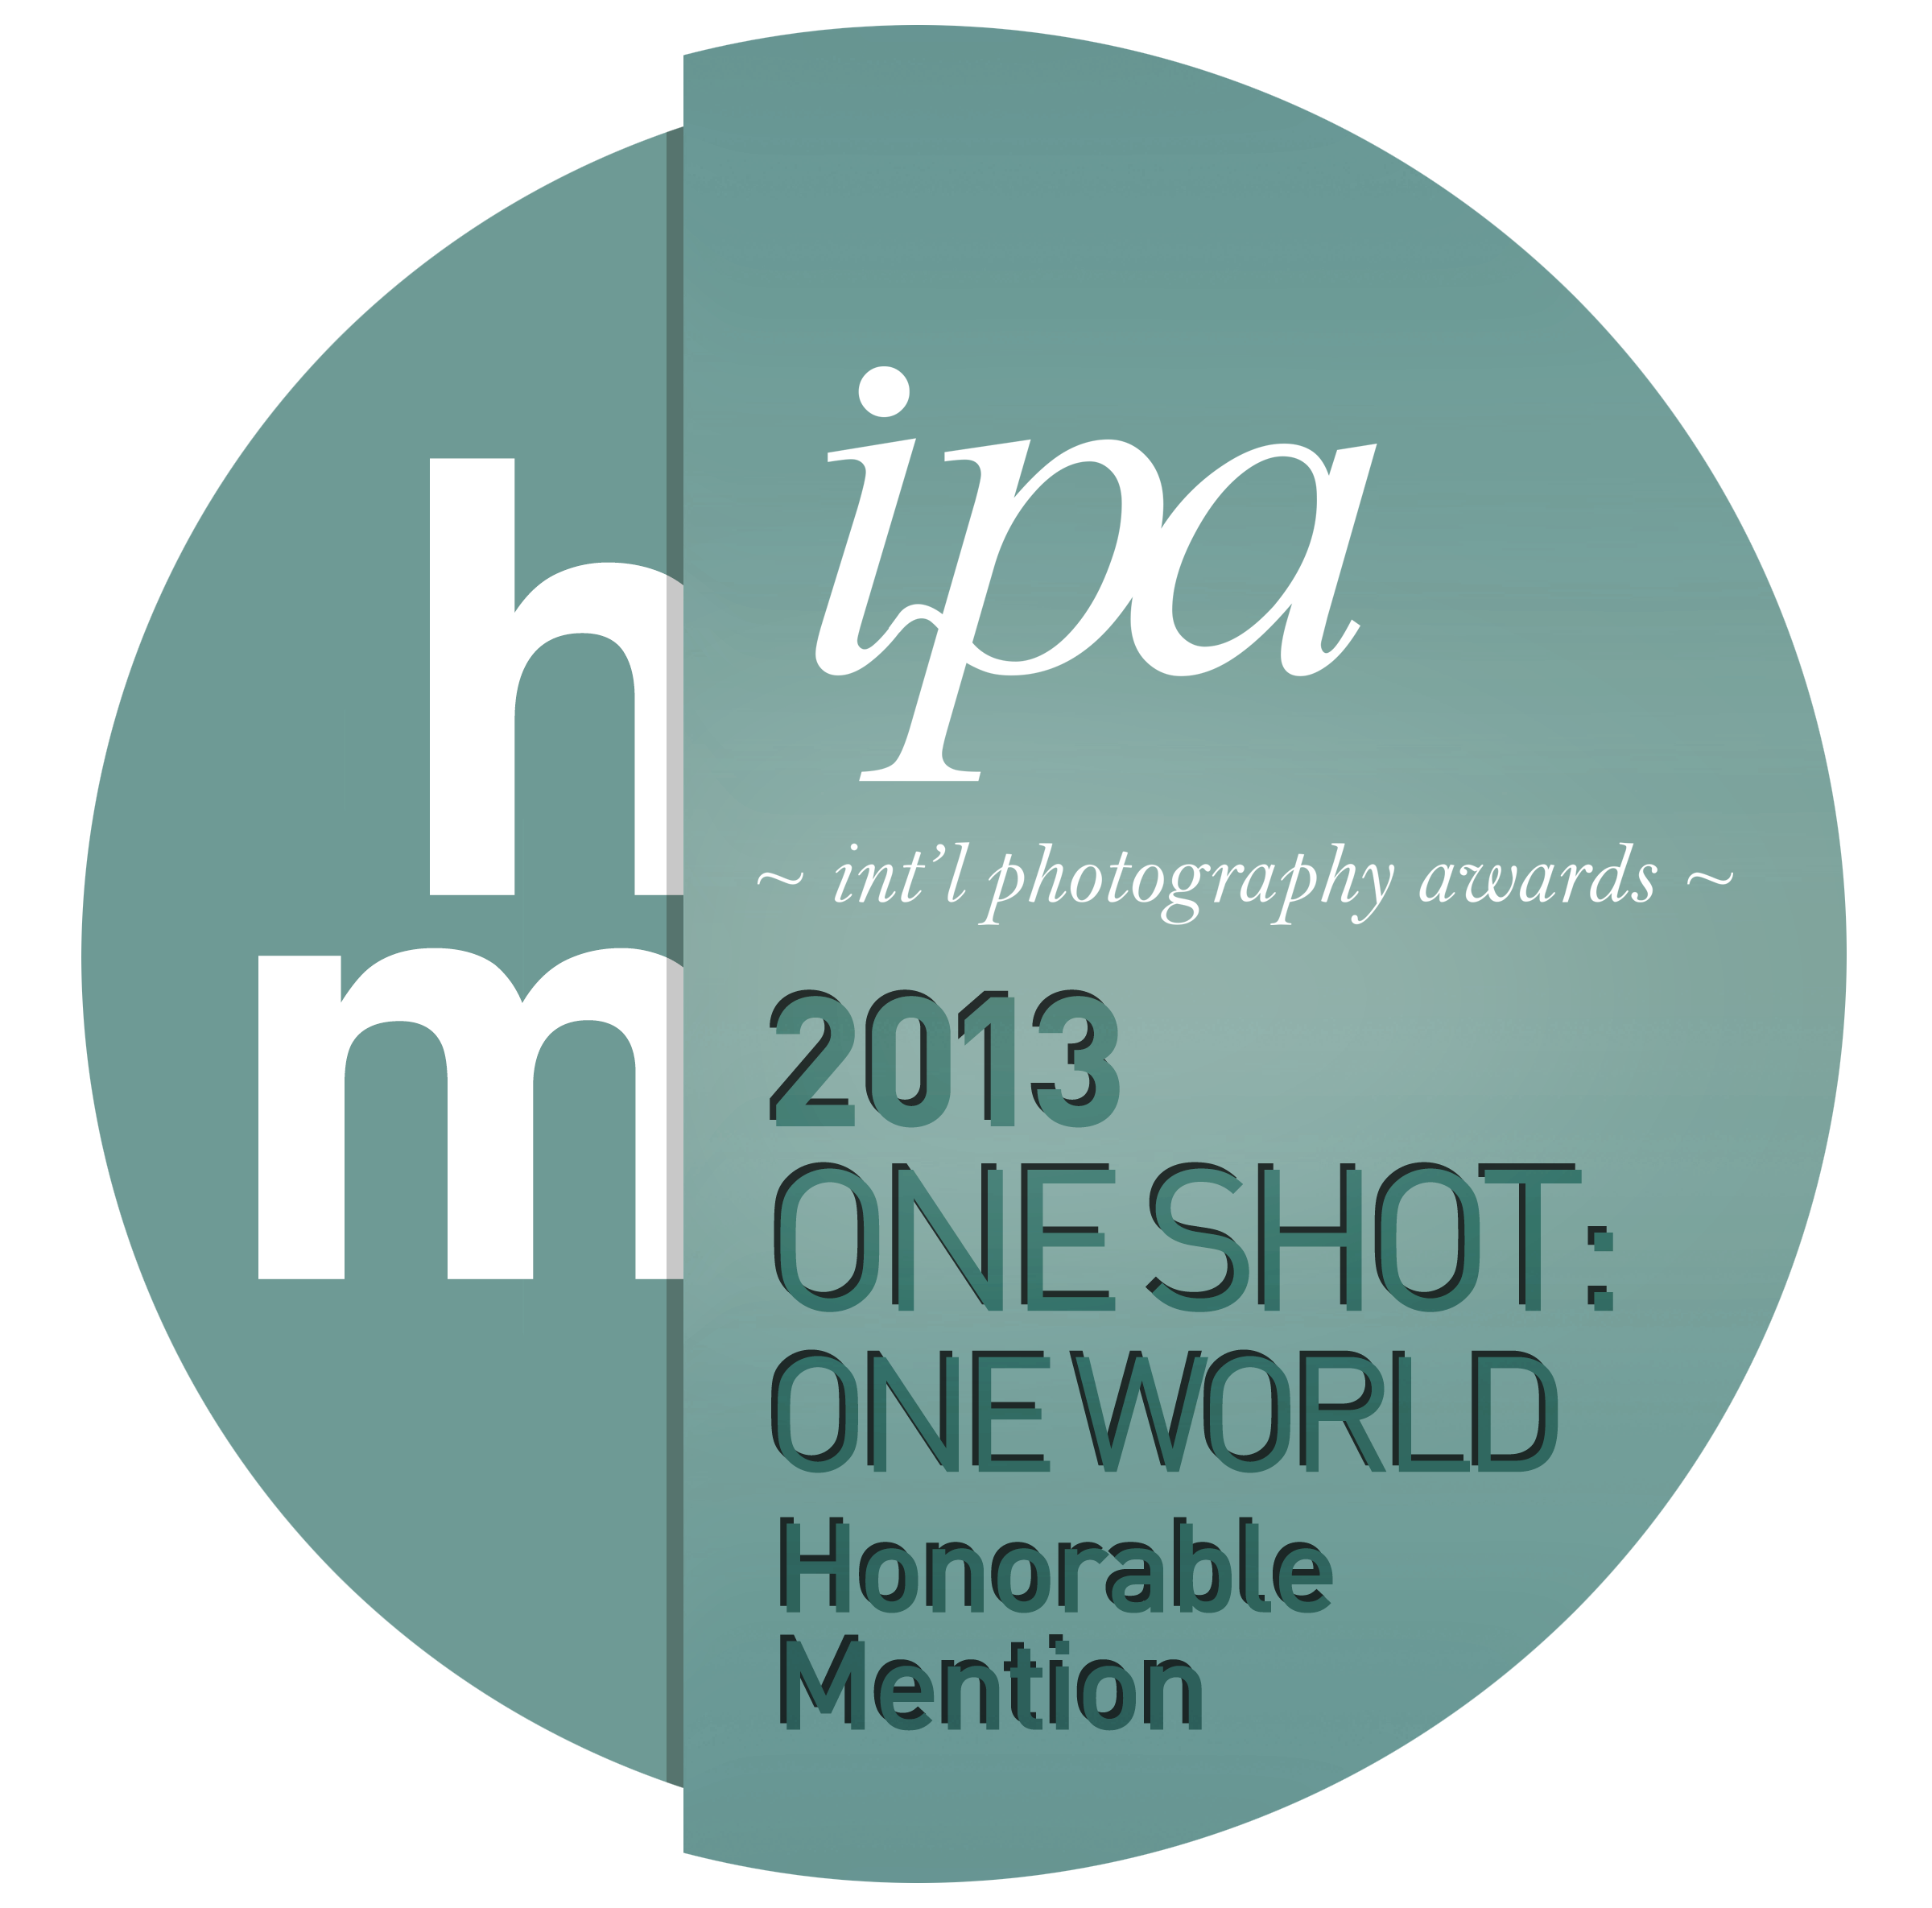 Honoroable Mention, International Photography Awards - One Shot:One World, 2013, Balcony Life